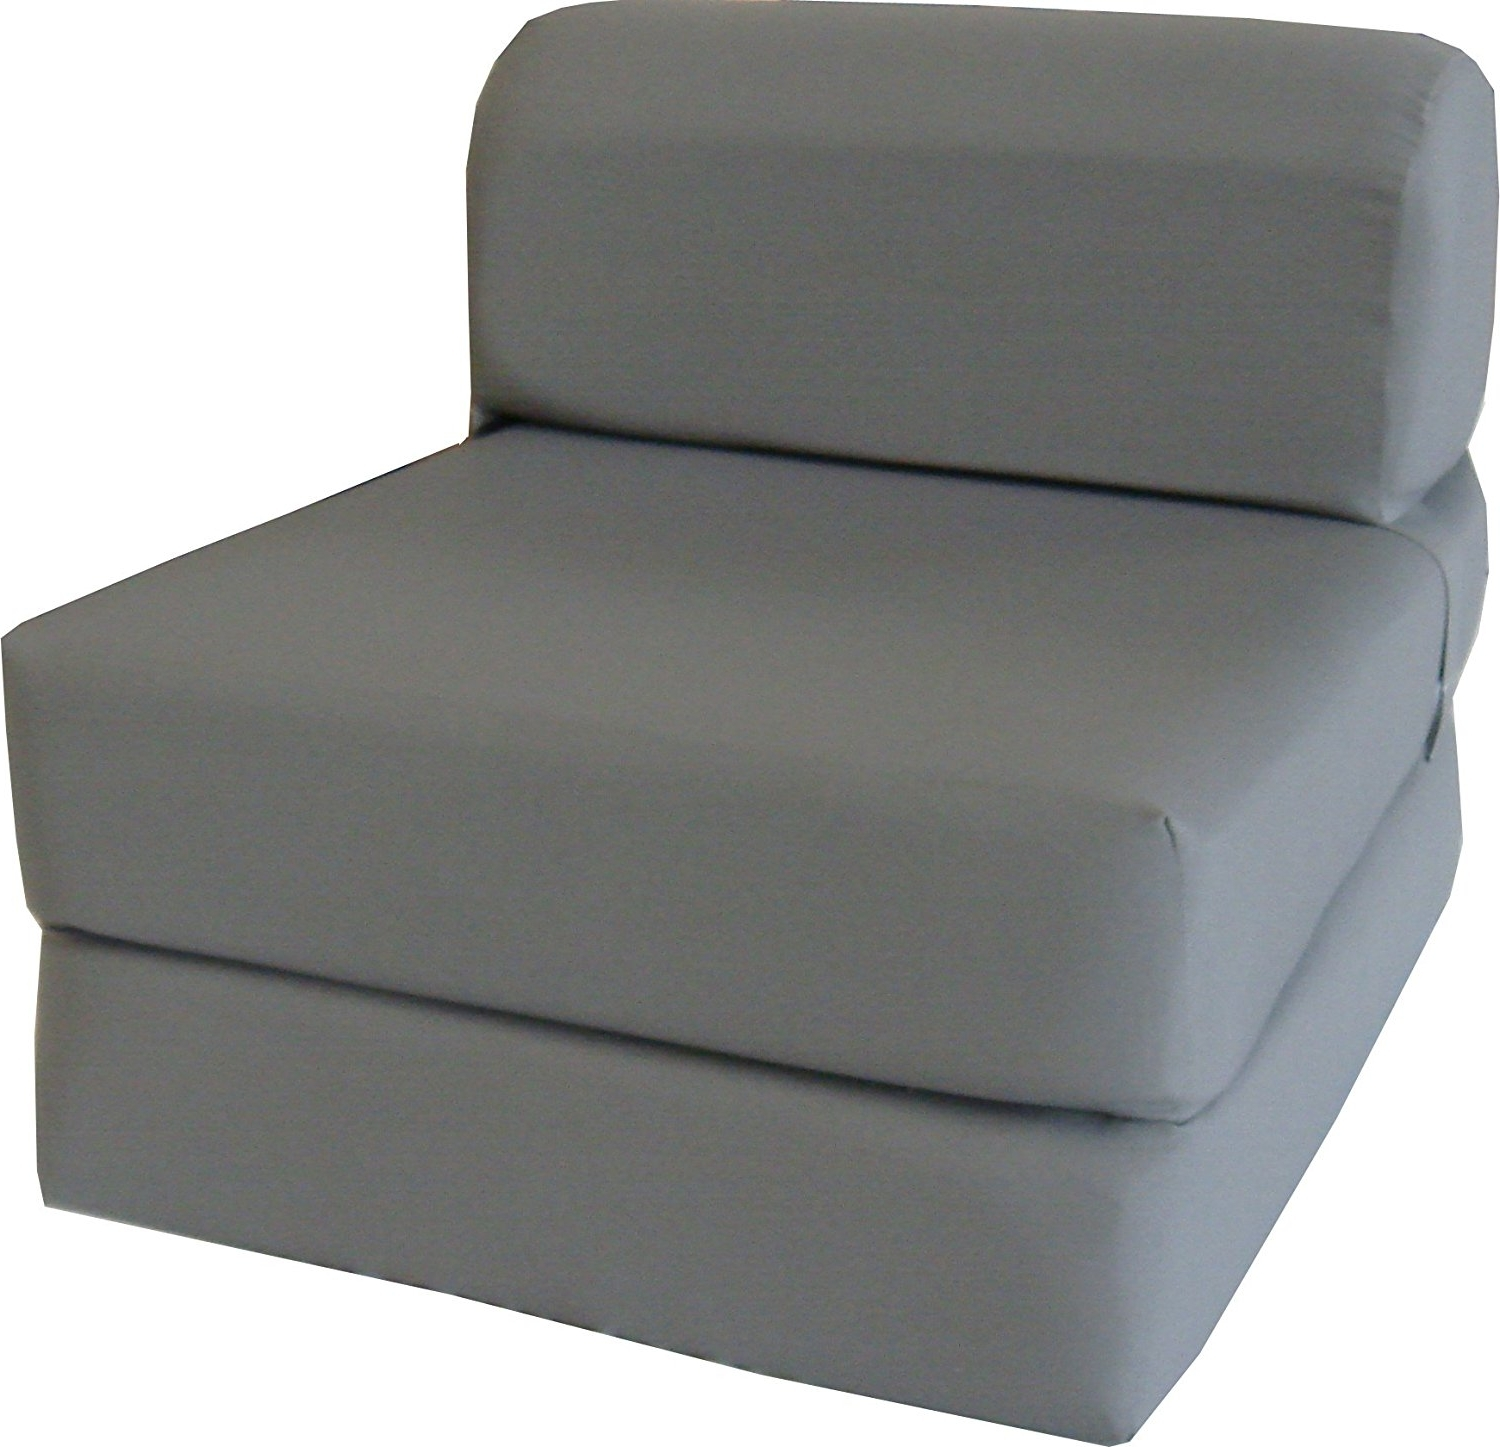 "Trendy Folding Sofa Chairs Pertaining To Amazon: Gray Sleeper Chair Folding Foam Bed Sized 6"" Thick X (View 2 of 15)"